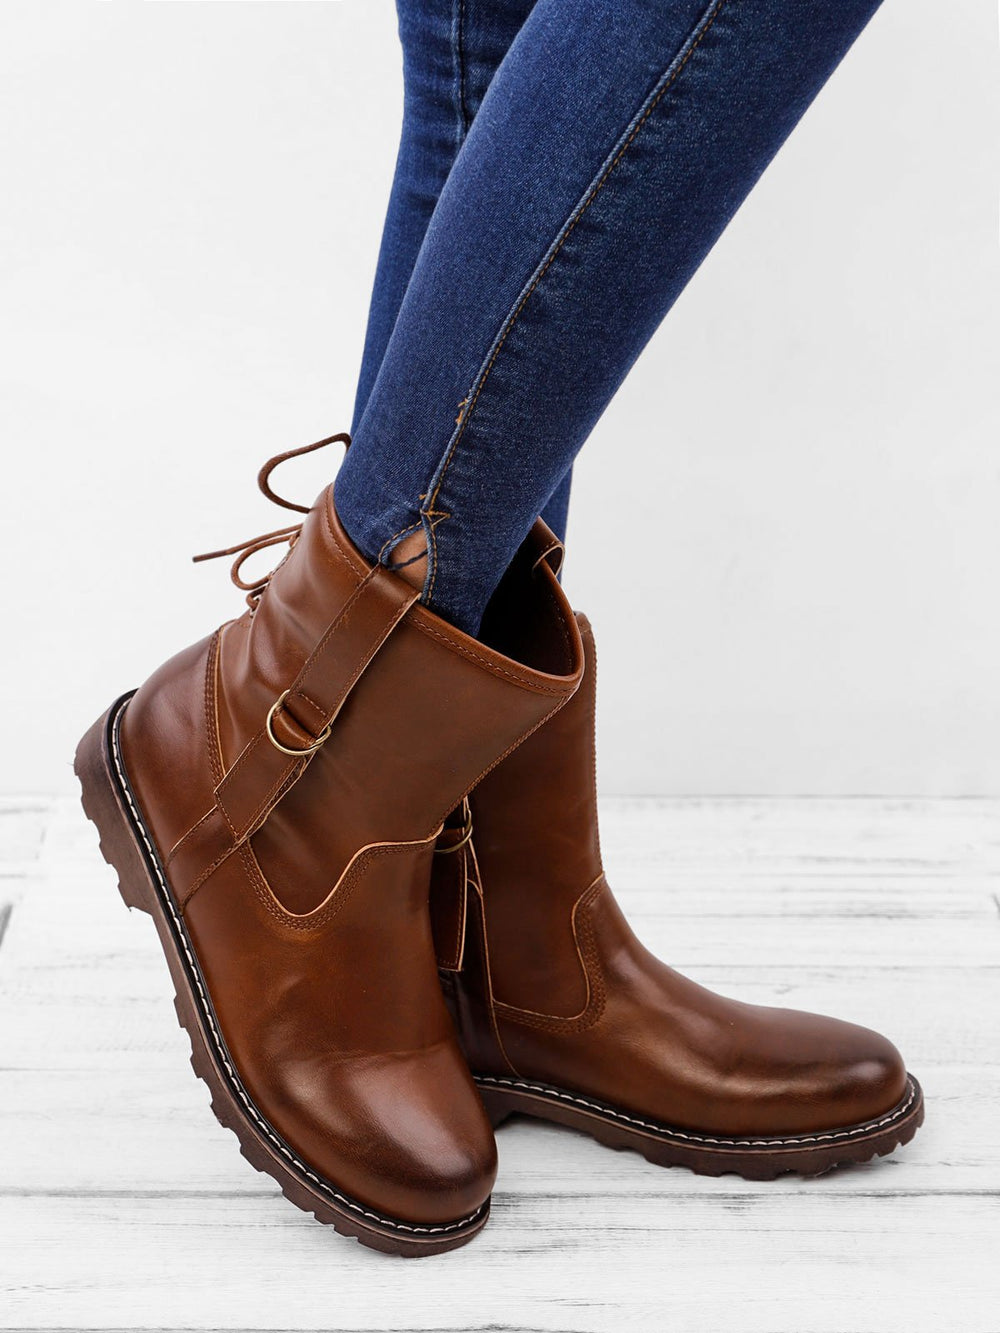 Annychloe Women's Leather Martin Boots for Women's Vintage Cowboy Shoes